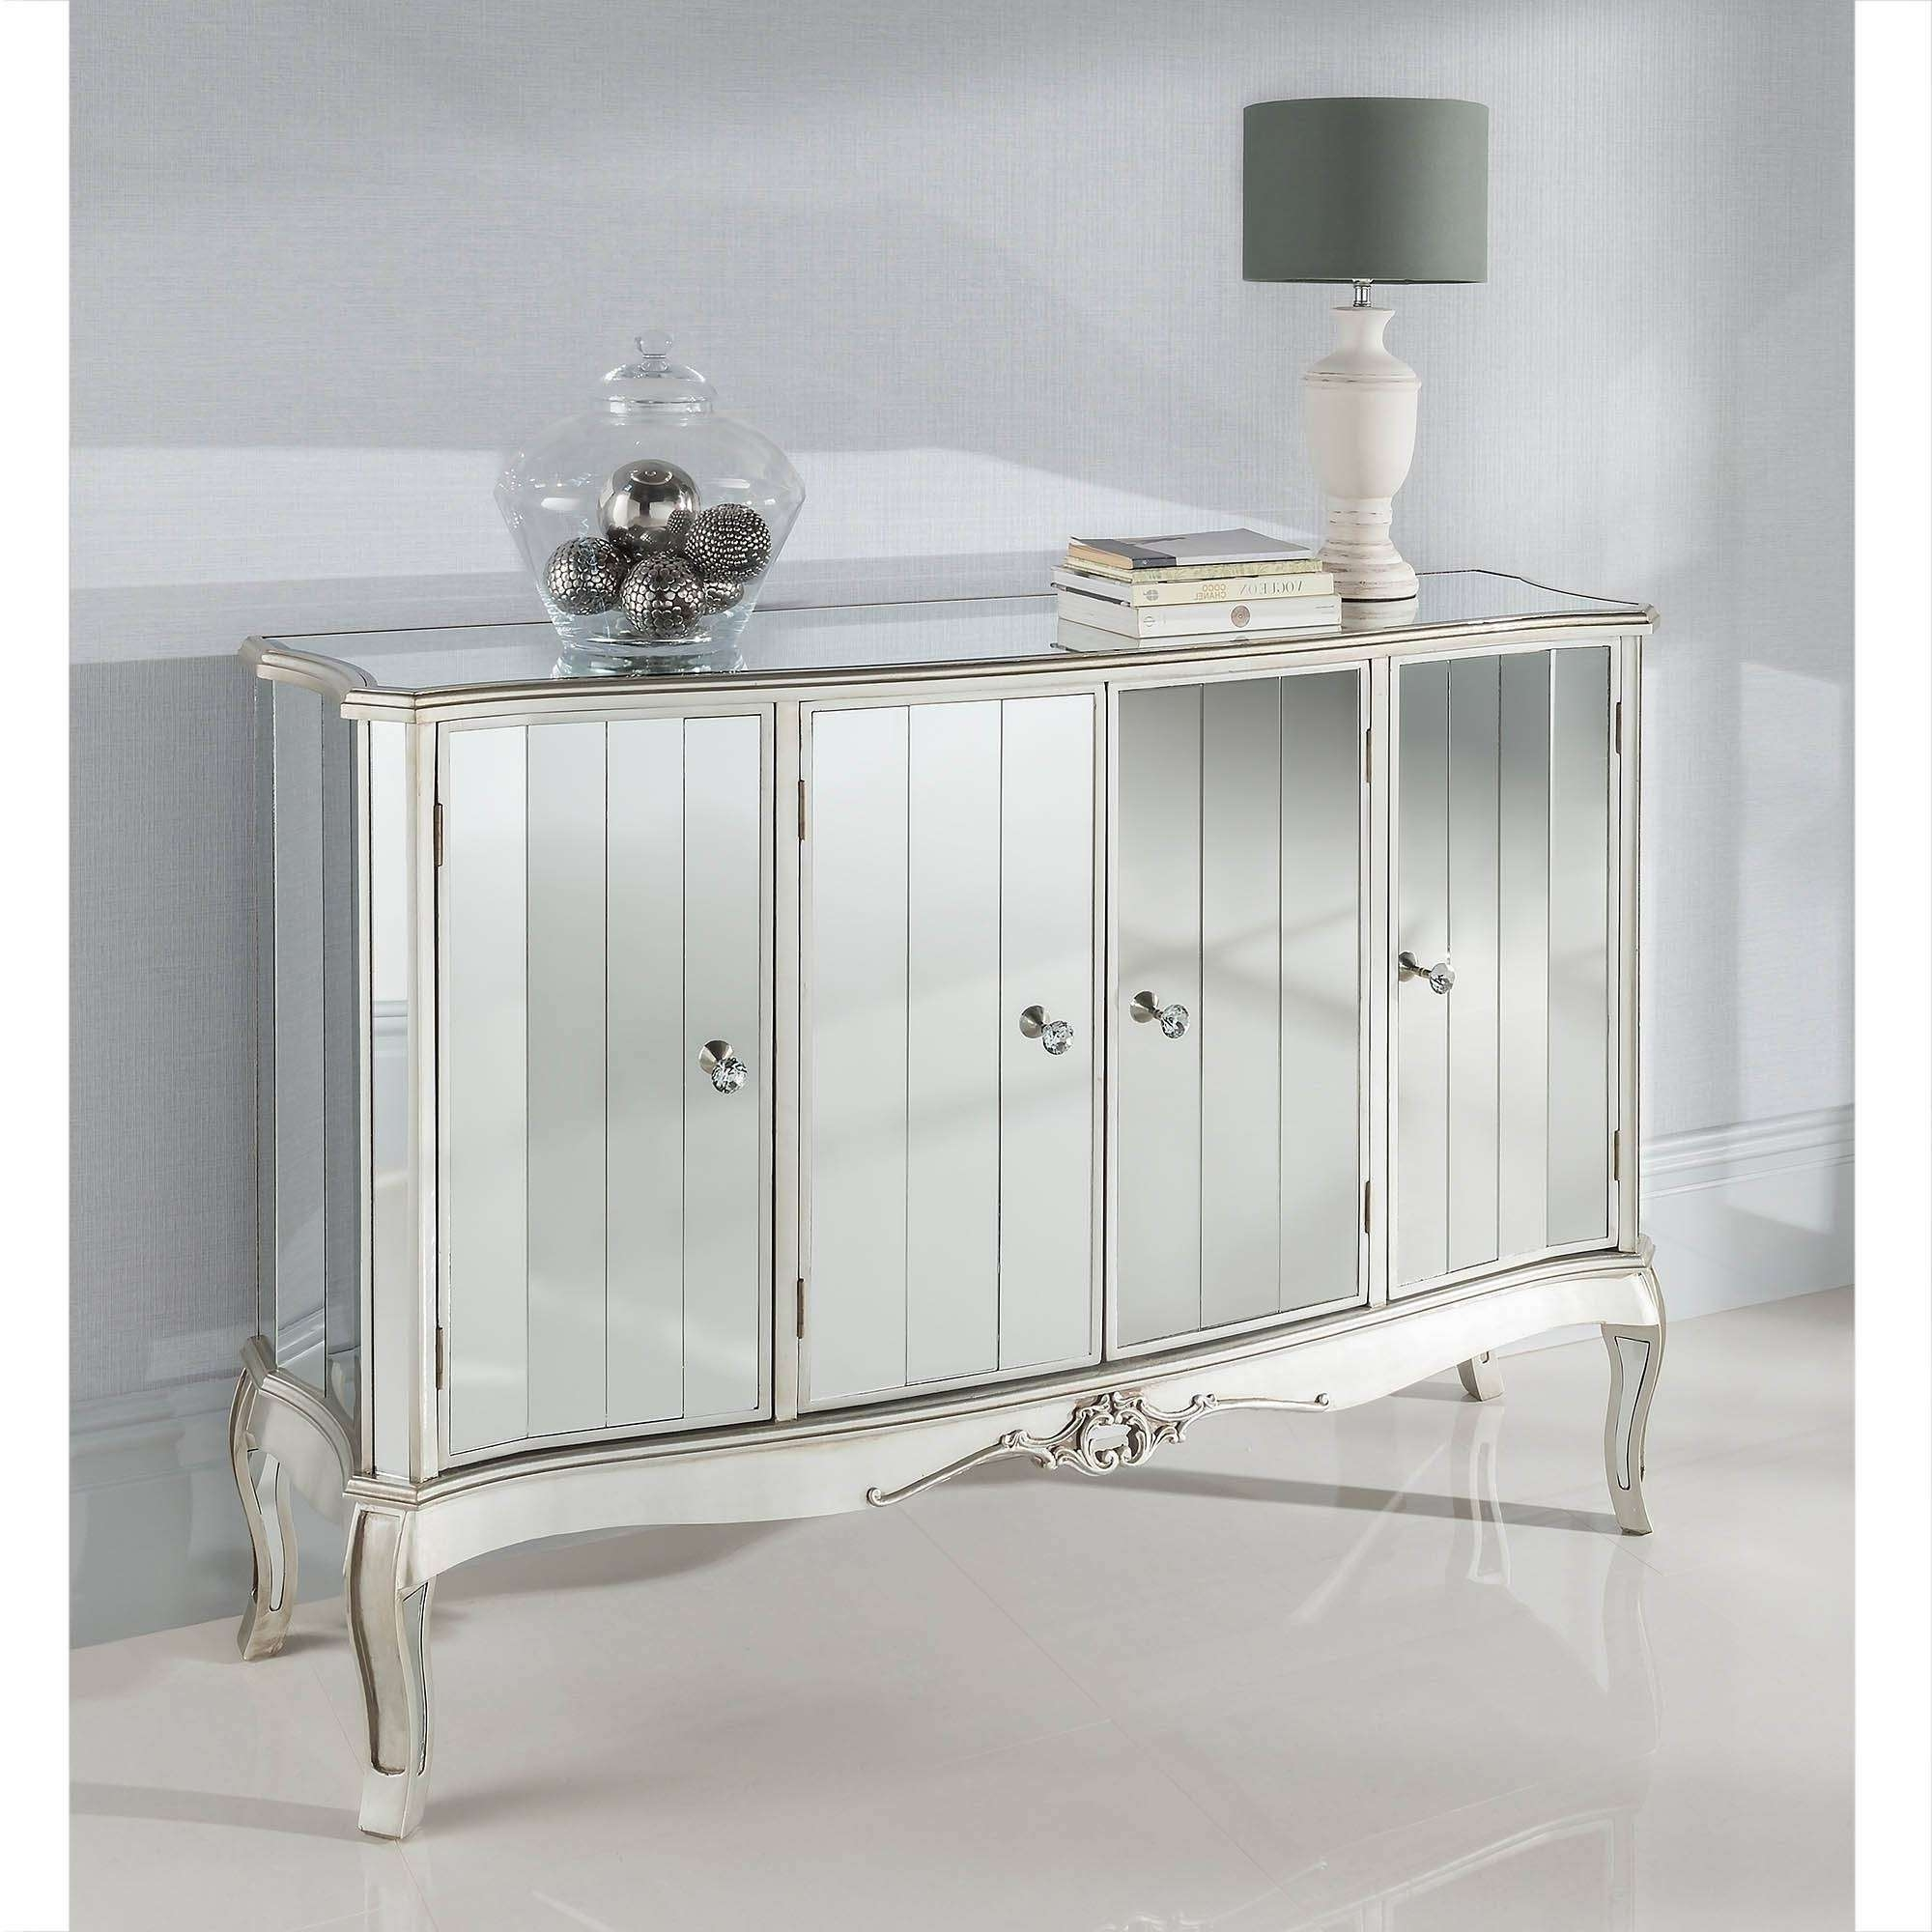 Mirrored Credenza Furniture Decorating — New Home Design Inside Small Mirrored Sideboards (View 10 of 20)